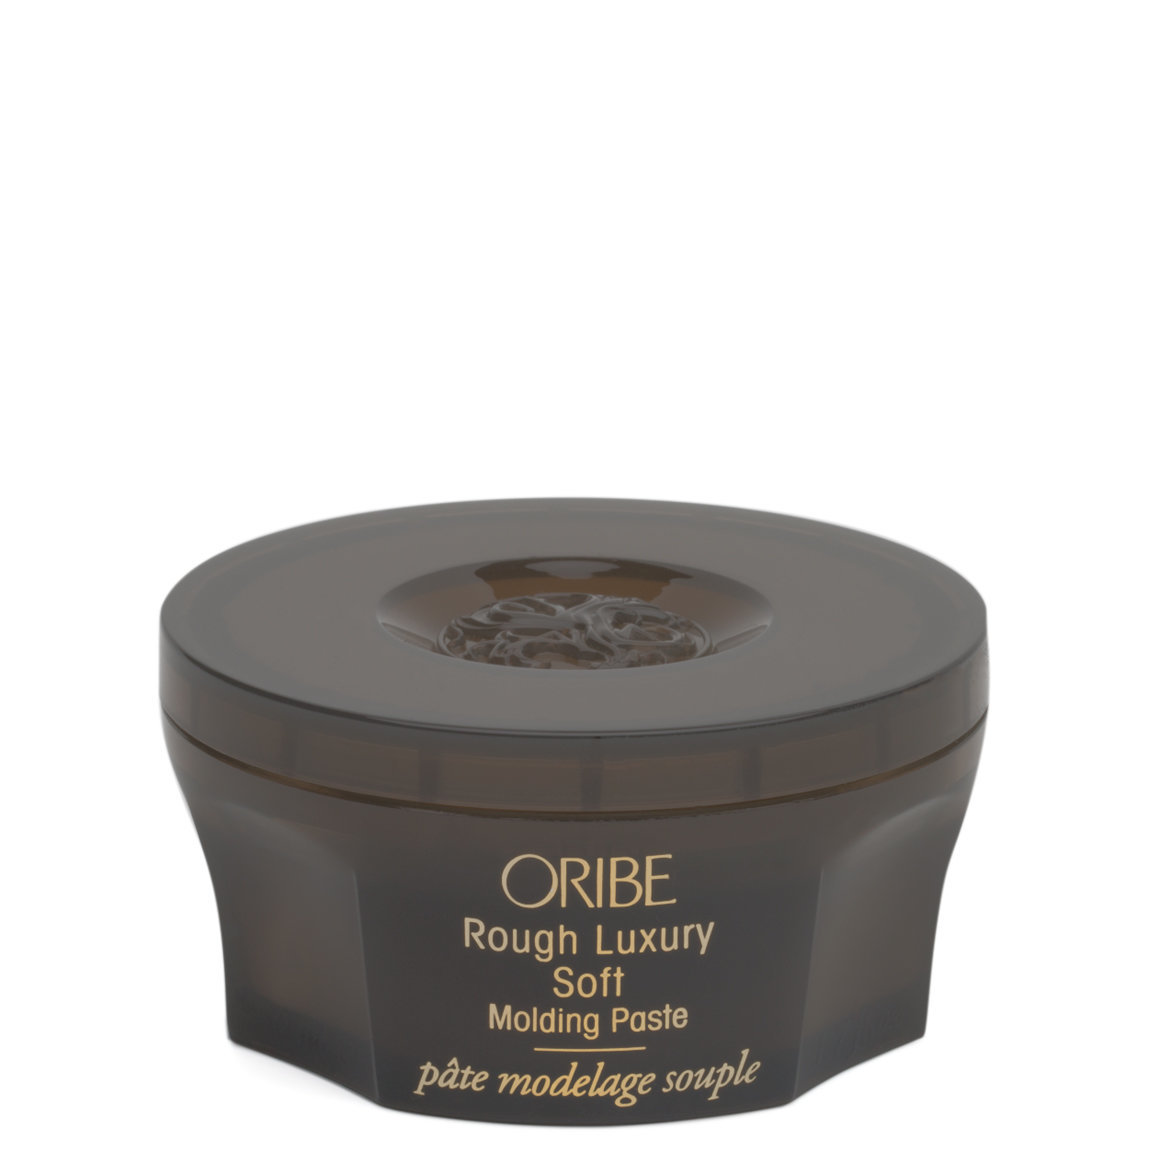 Oribe Rough Luxury Soft Molding Paste product swatch.